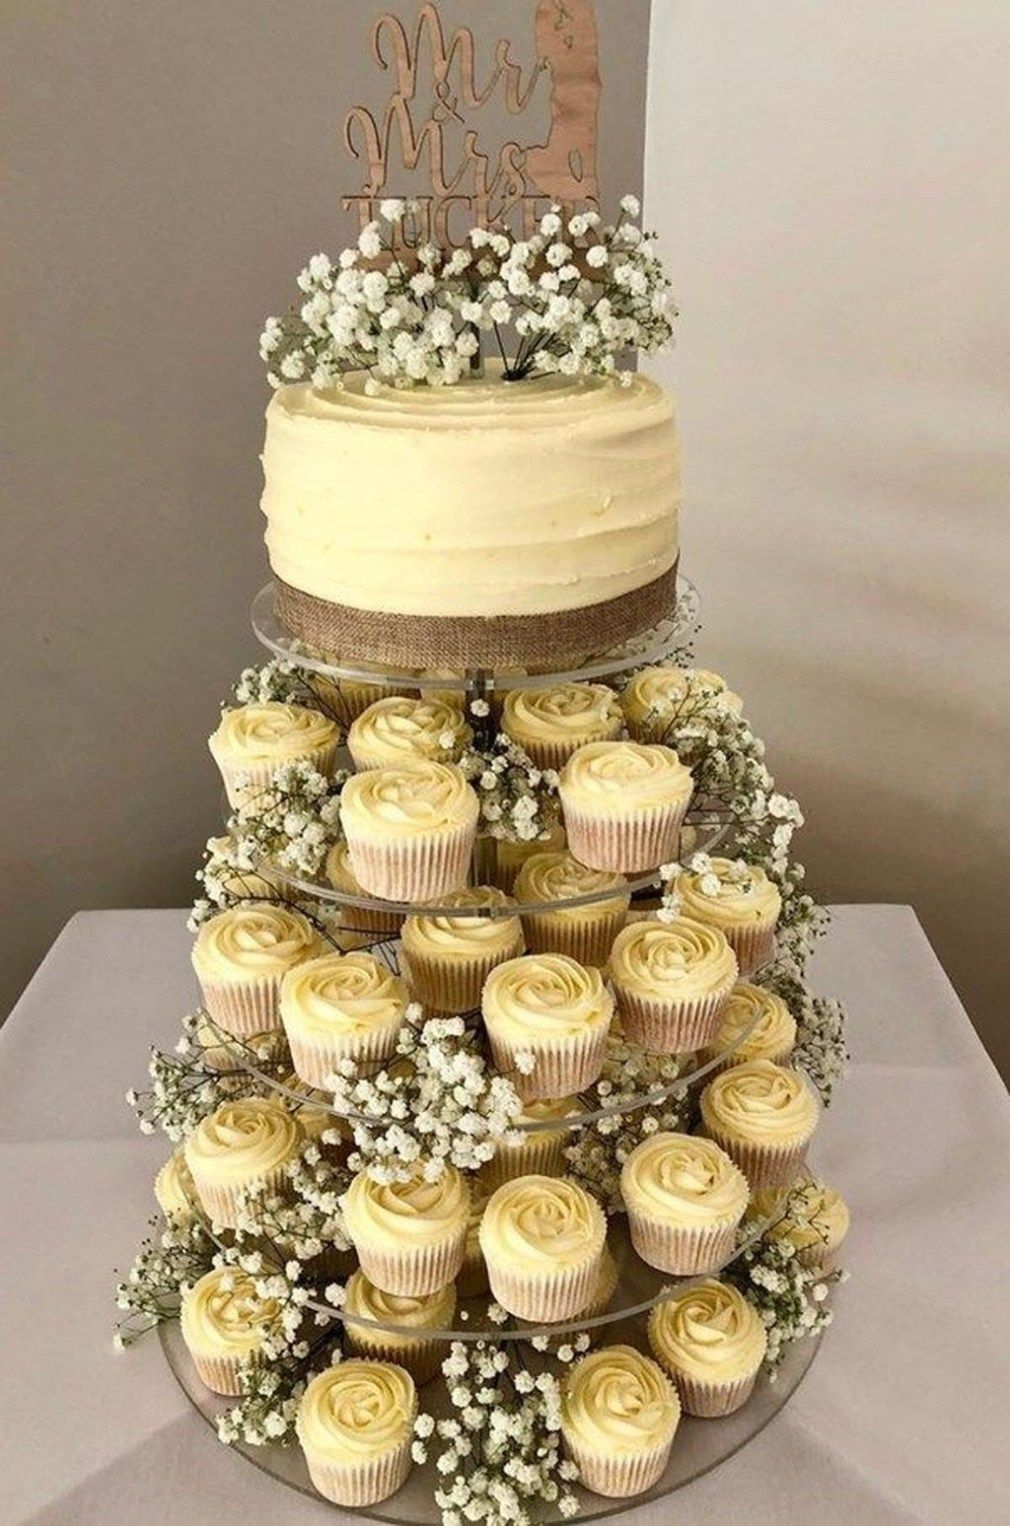 20 Cute Wedding Cake Cupcakes Ideas With Images Cupcake Tower